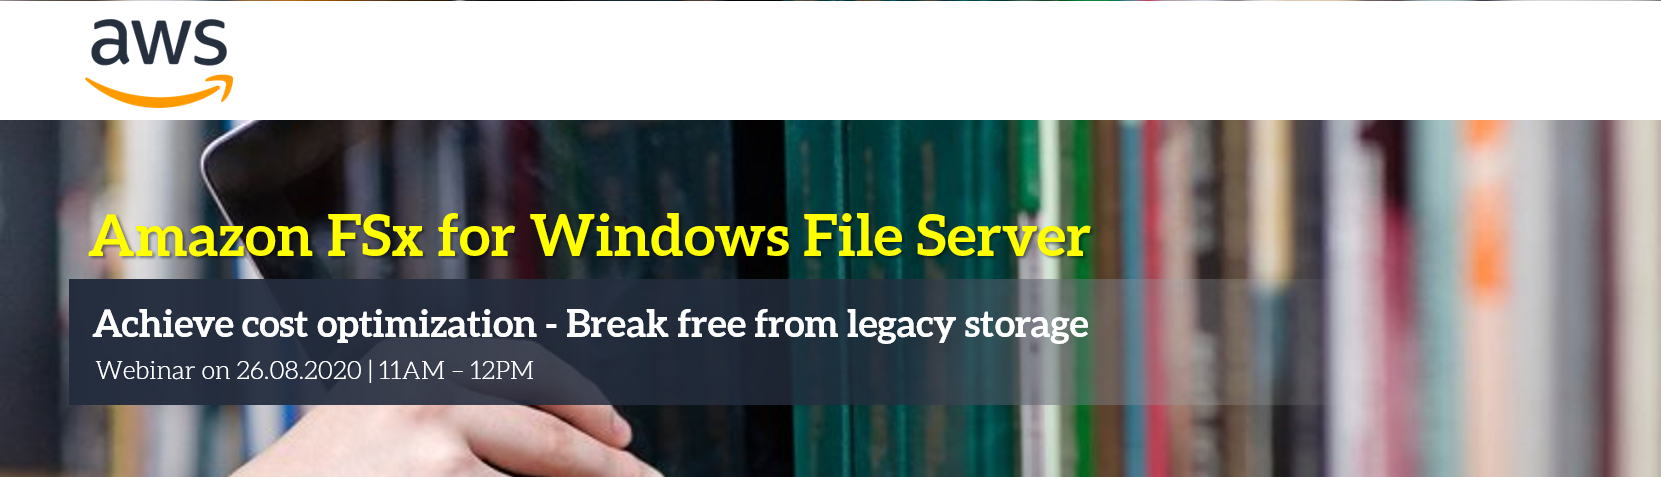 Get in-depth Visibility Around the Amazon FSx, Velocis File Storage Solutions